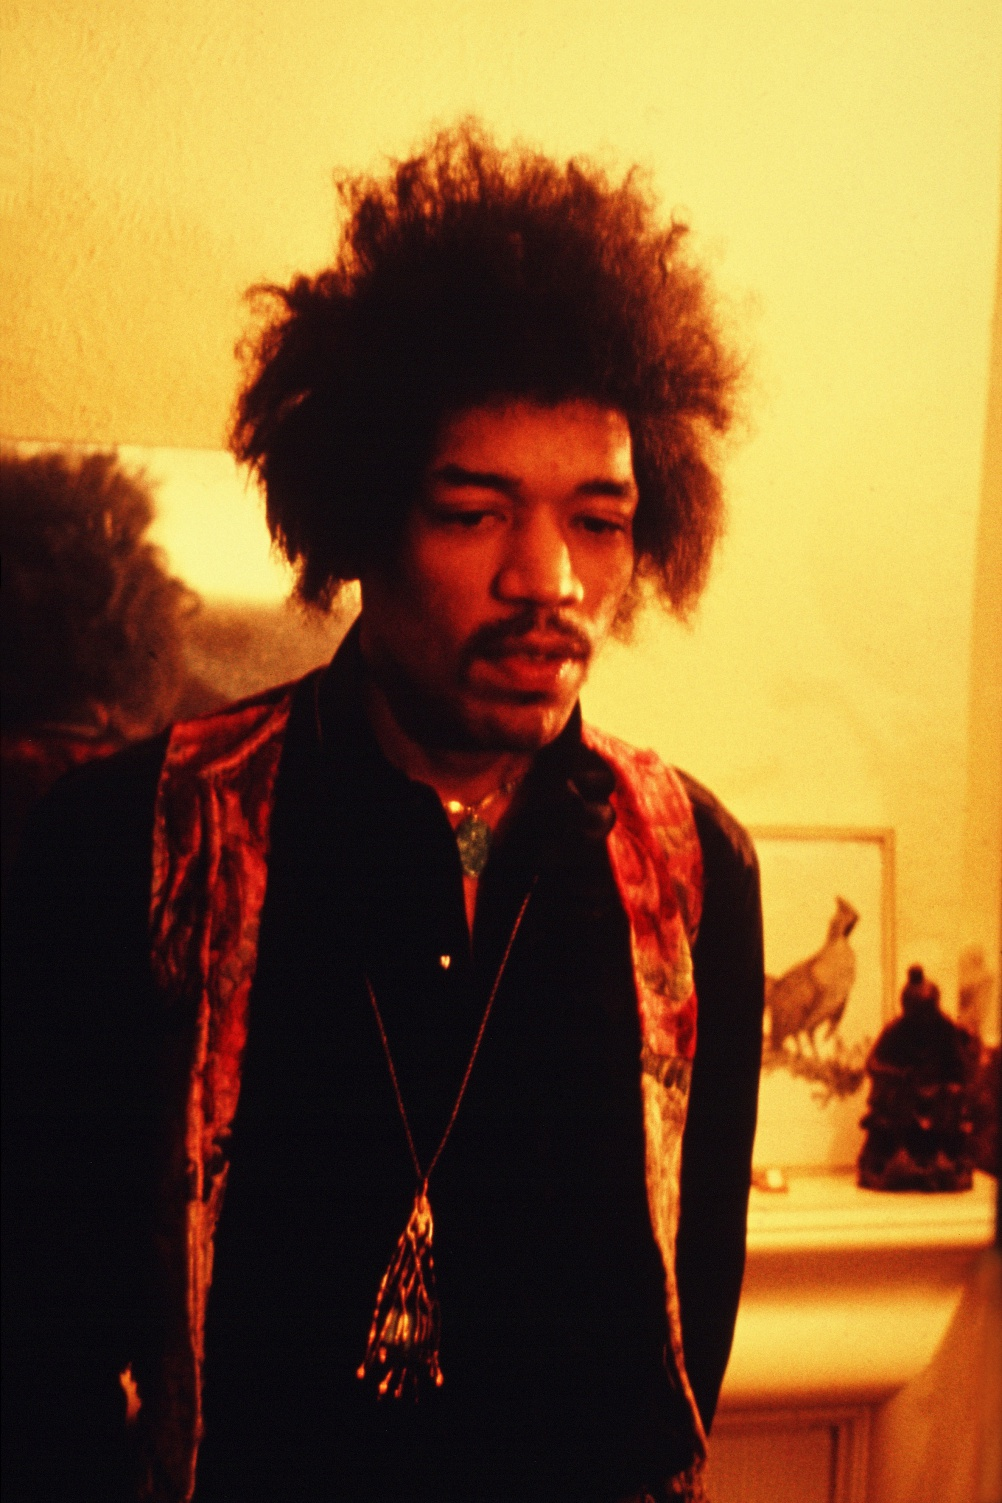 Photographic portrait by Richard Keith Wolff of Jimi Hendrix, musician, guitarist, standing in his flat, 23 Brook Street. Mayfair, London, UK, 7th of January 1969. Obligatory credit Richard Keith Wolff